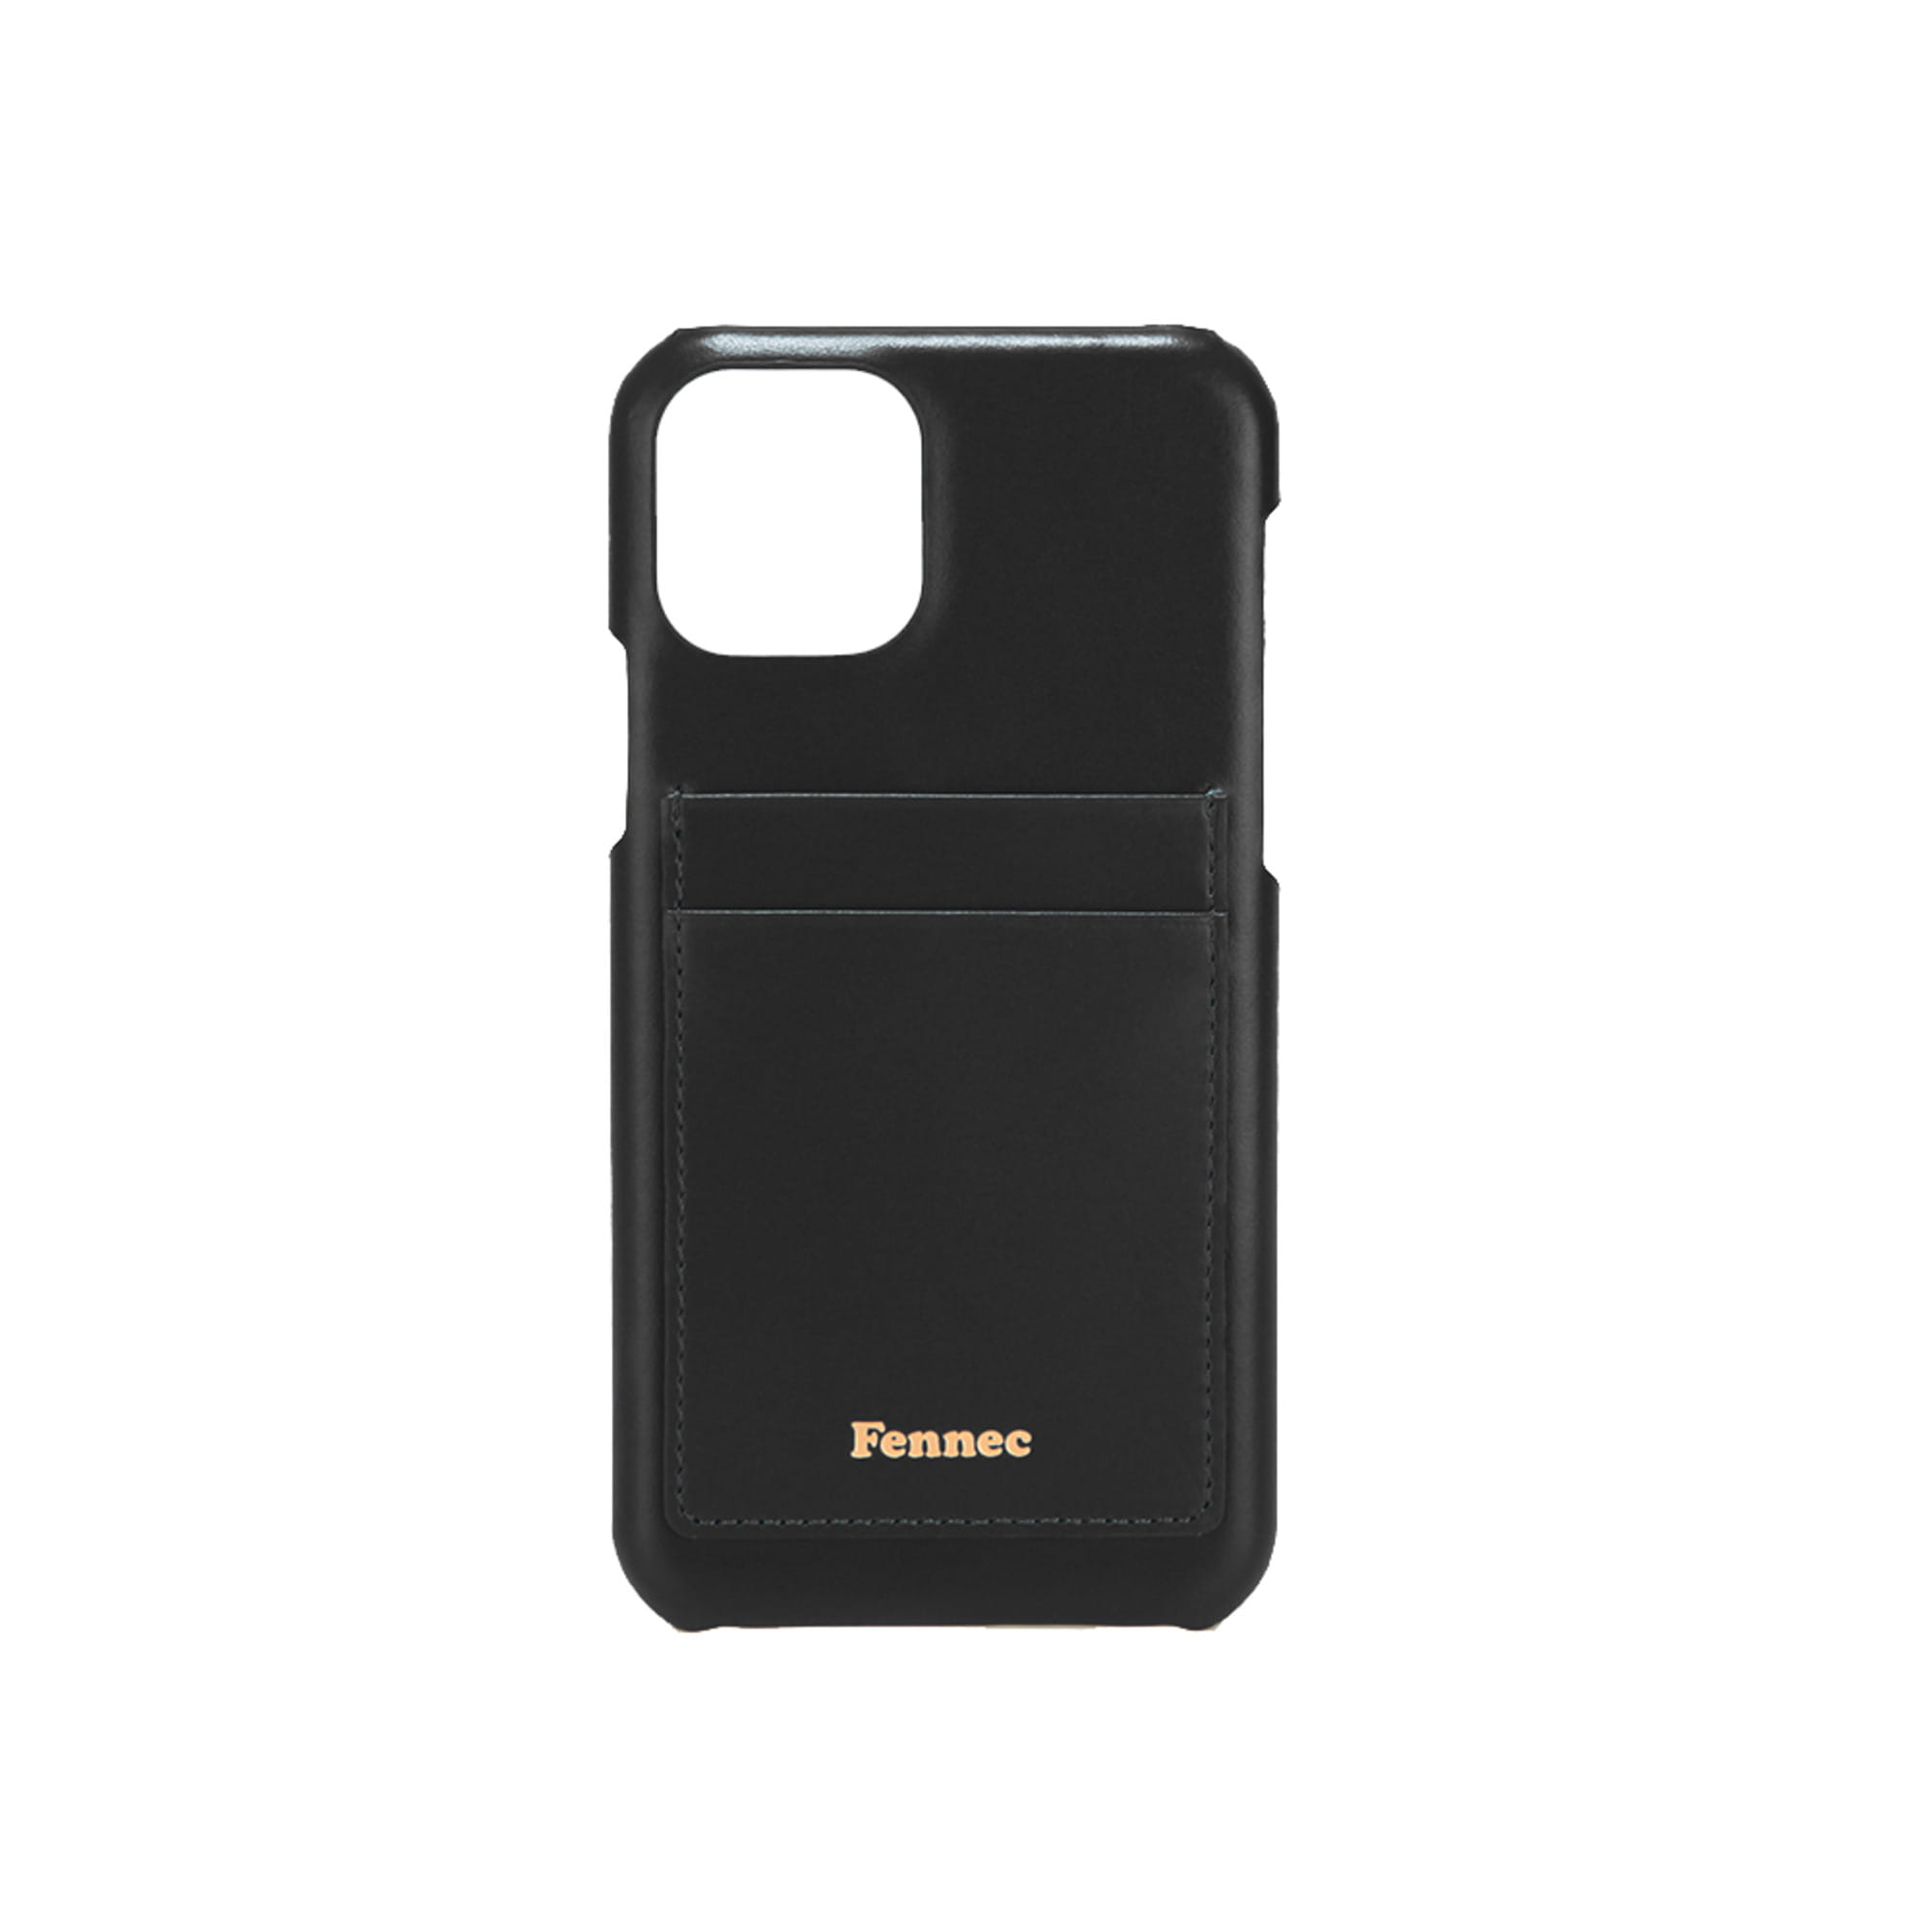 Fennec 페넥 LEATHER iPHONE 11PRO CARD CASE (4색상)